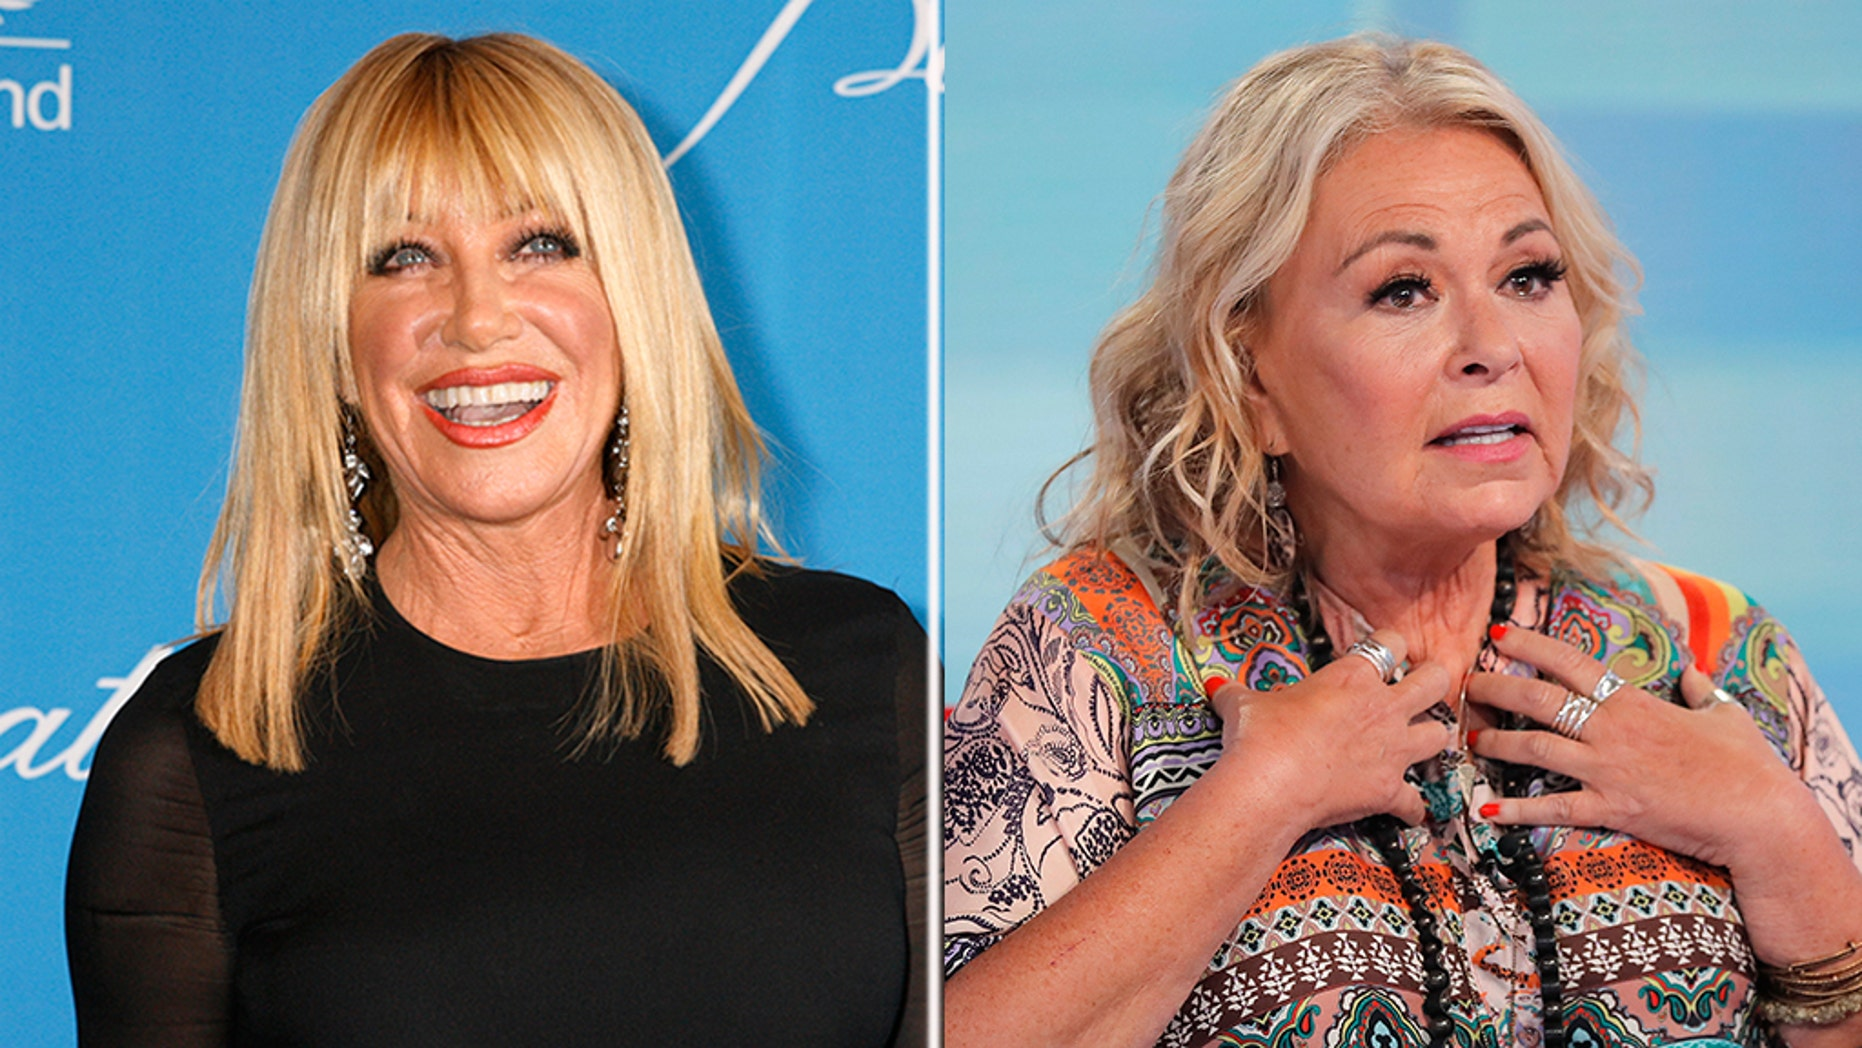 Suzanne Somers weighs in with Roseanne Barr's shelling of ABC in a new interview with Yahoo Entertainment released Tuesday.